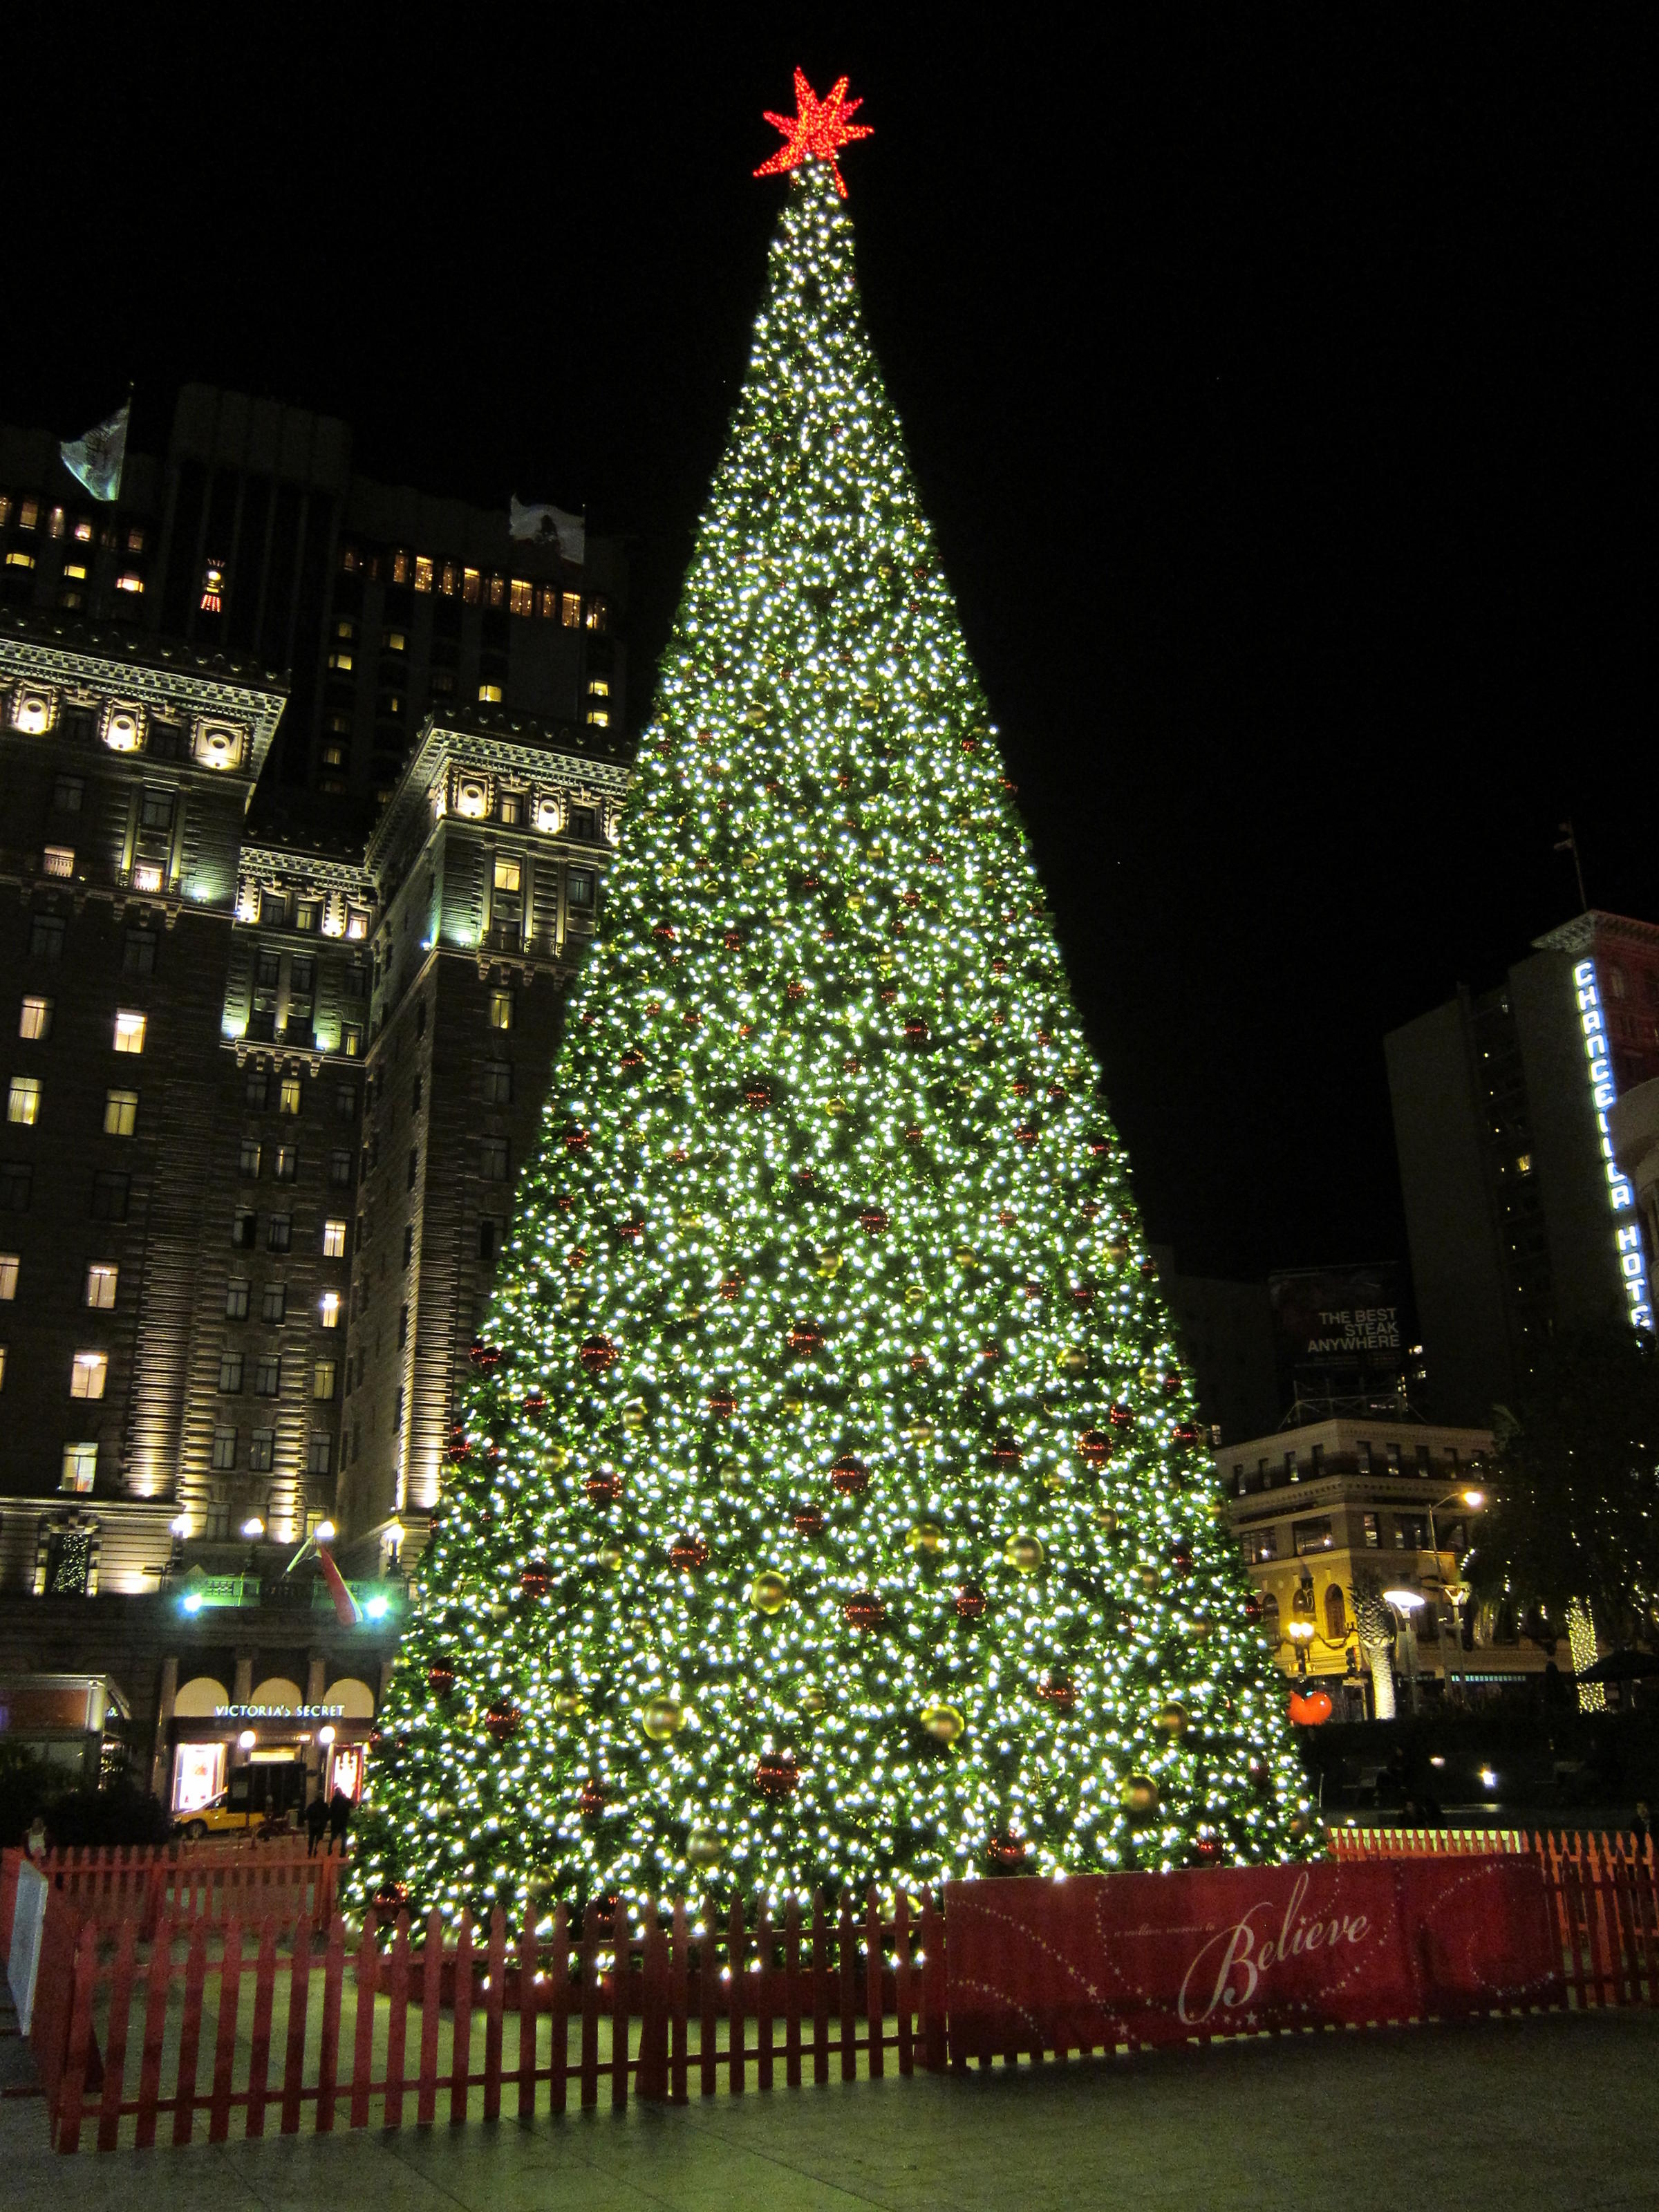 Macys Christmas Tree.Macy S To Use Artificial Christmas Tree This Year Wabe 90 1 Fm